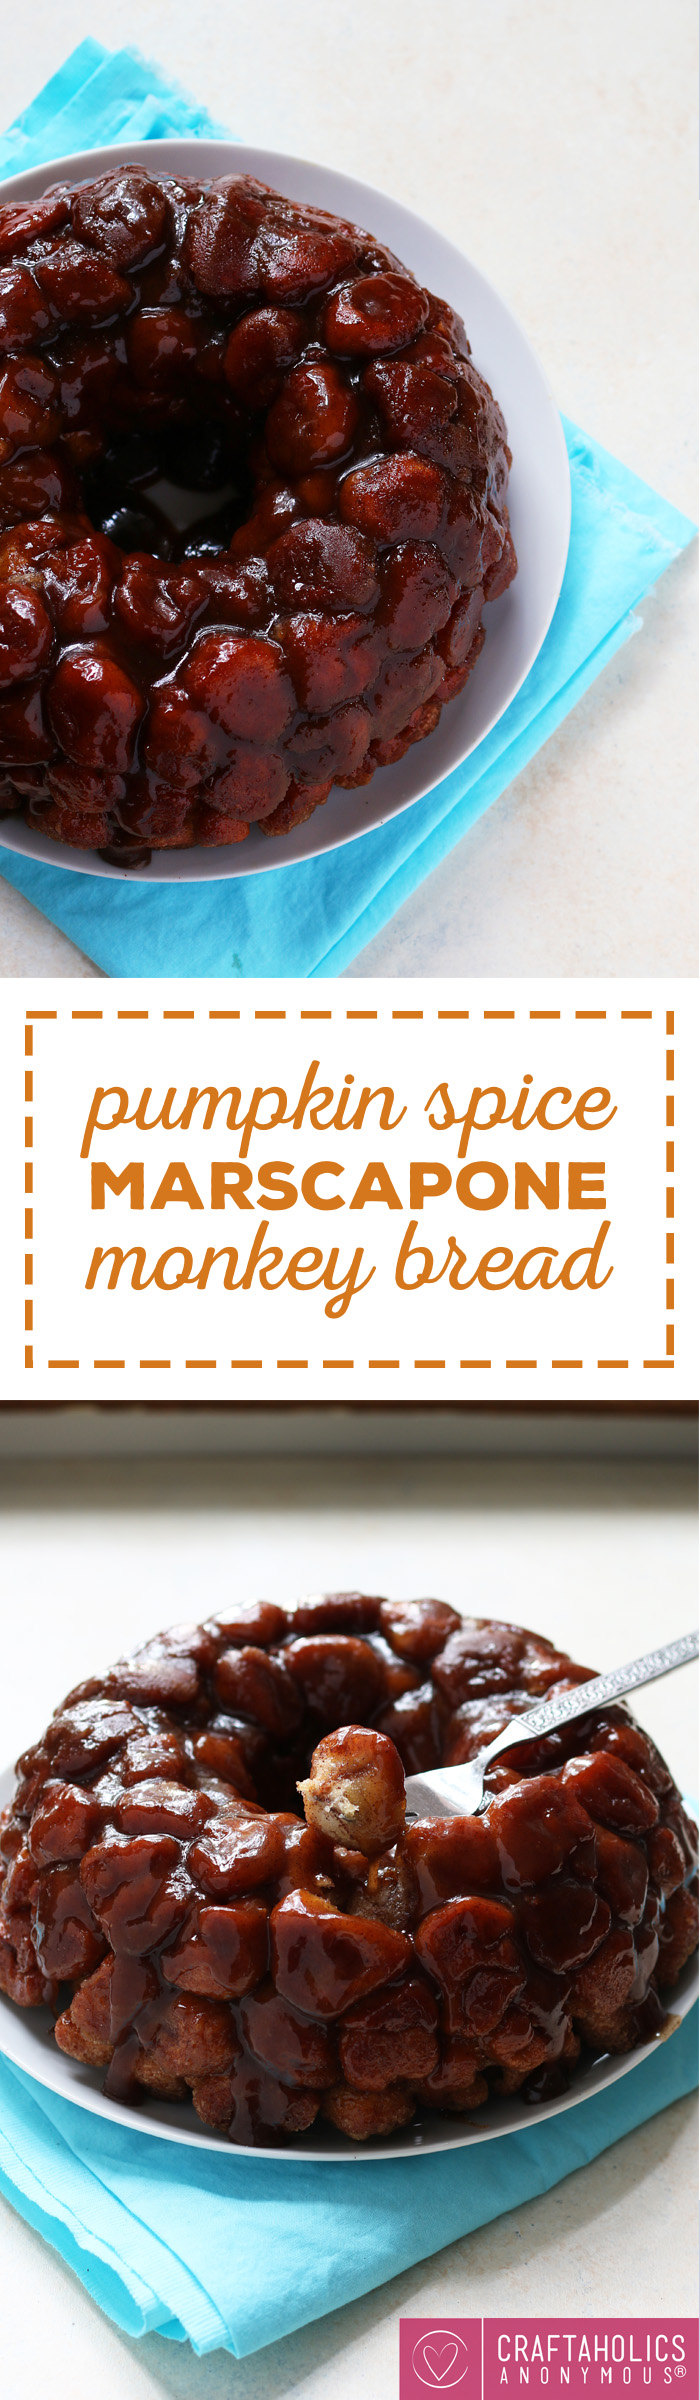 Pumpkin Spice Marscapone Monkey Bread - this amazing fall dessert will fill your home with a delicious aroma and be a sweet treat on crisp autumn nights! craftaholicsanonymous.net